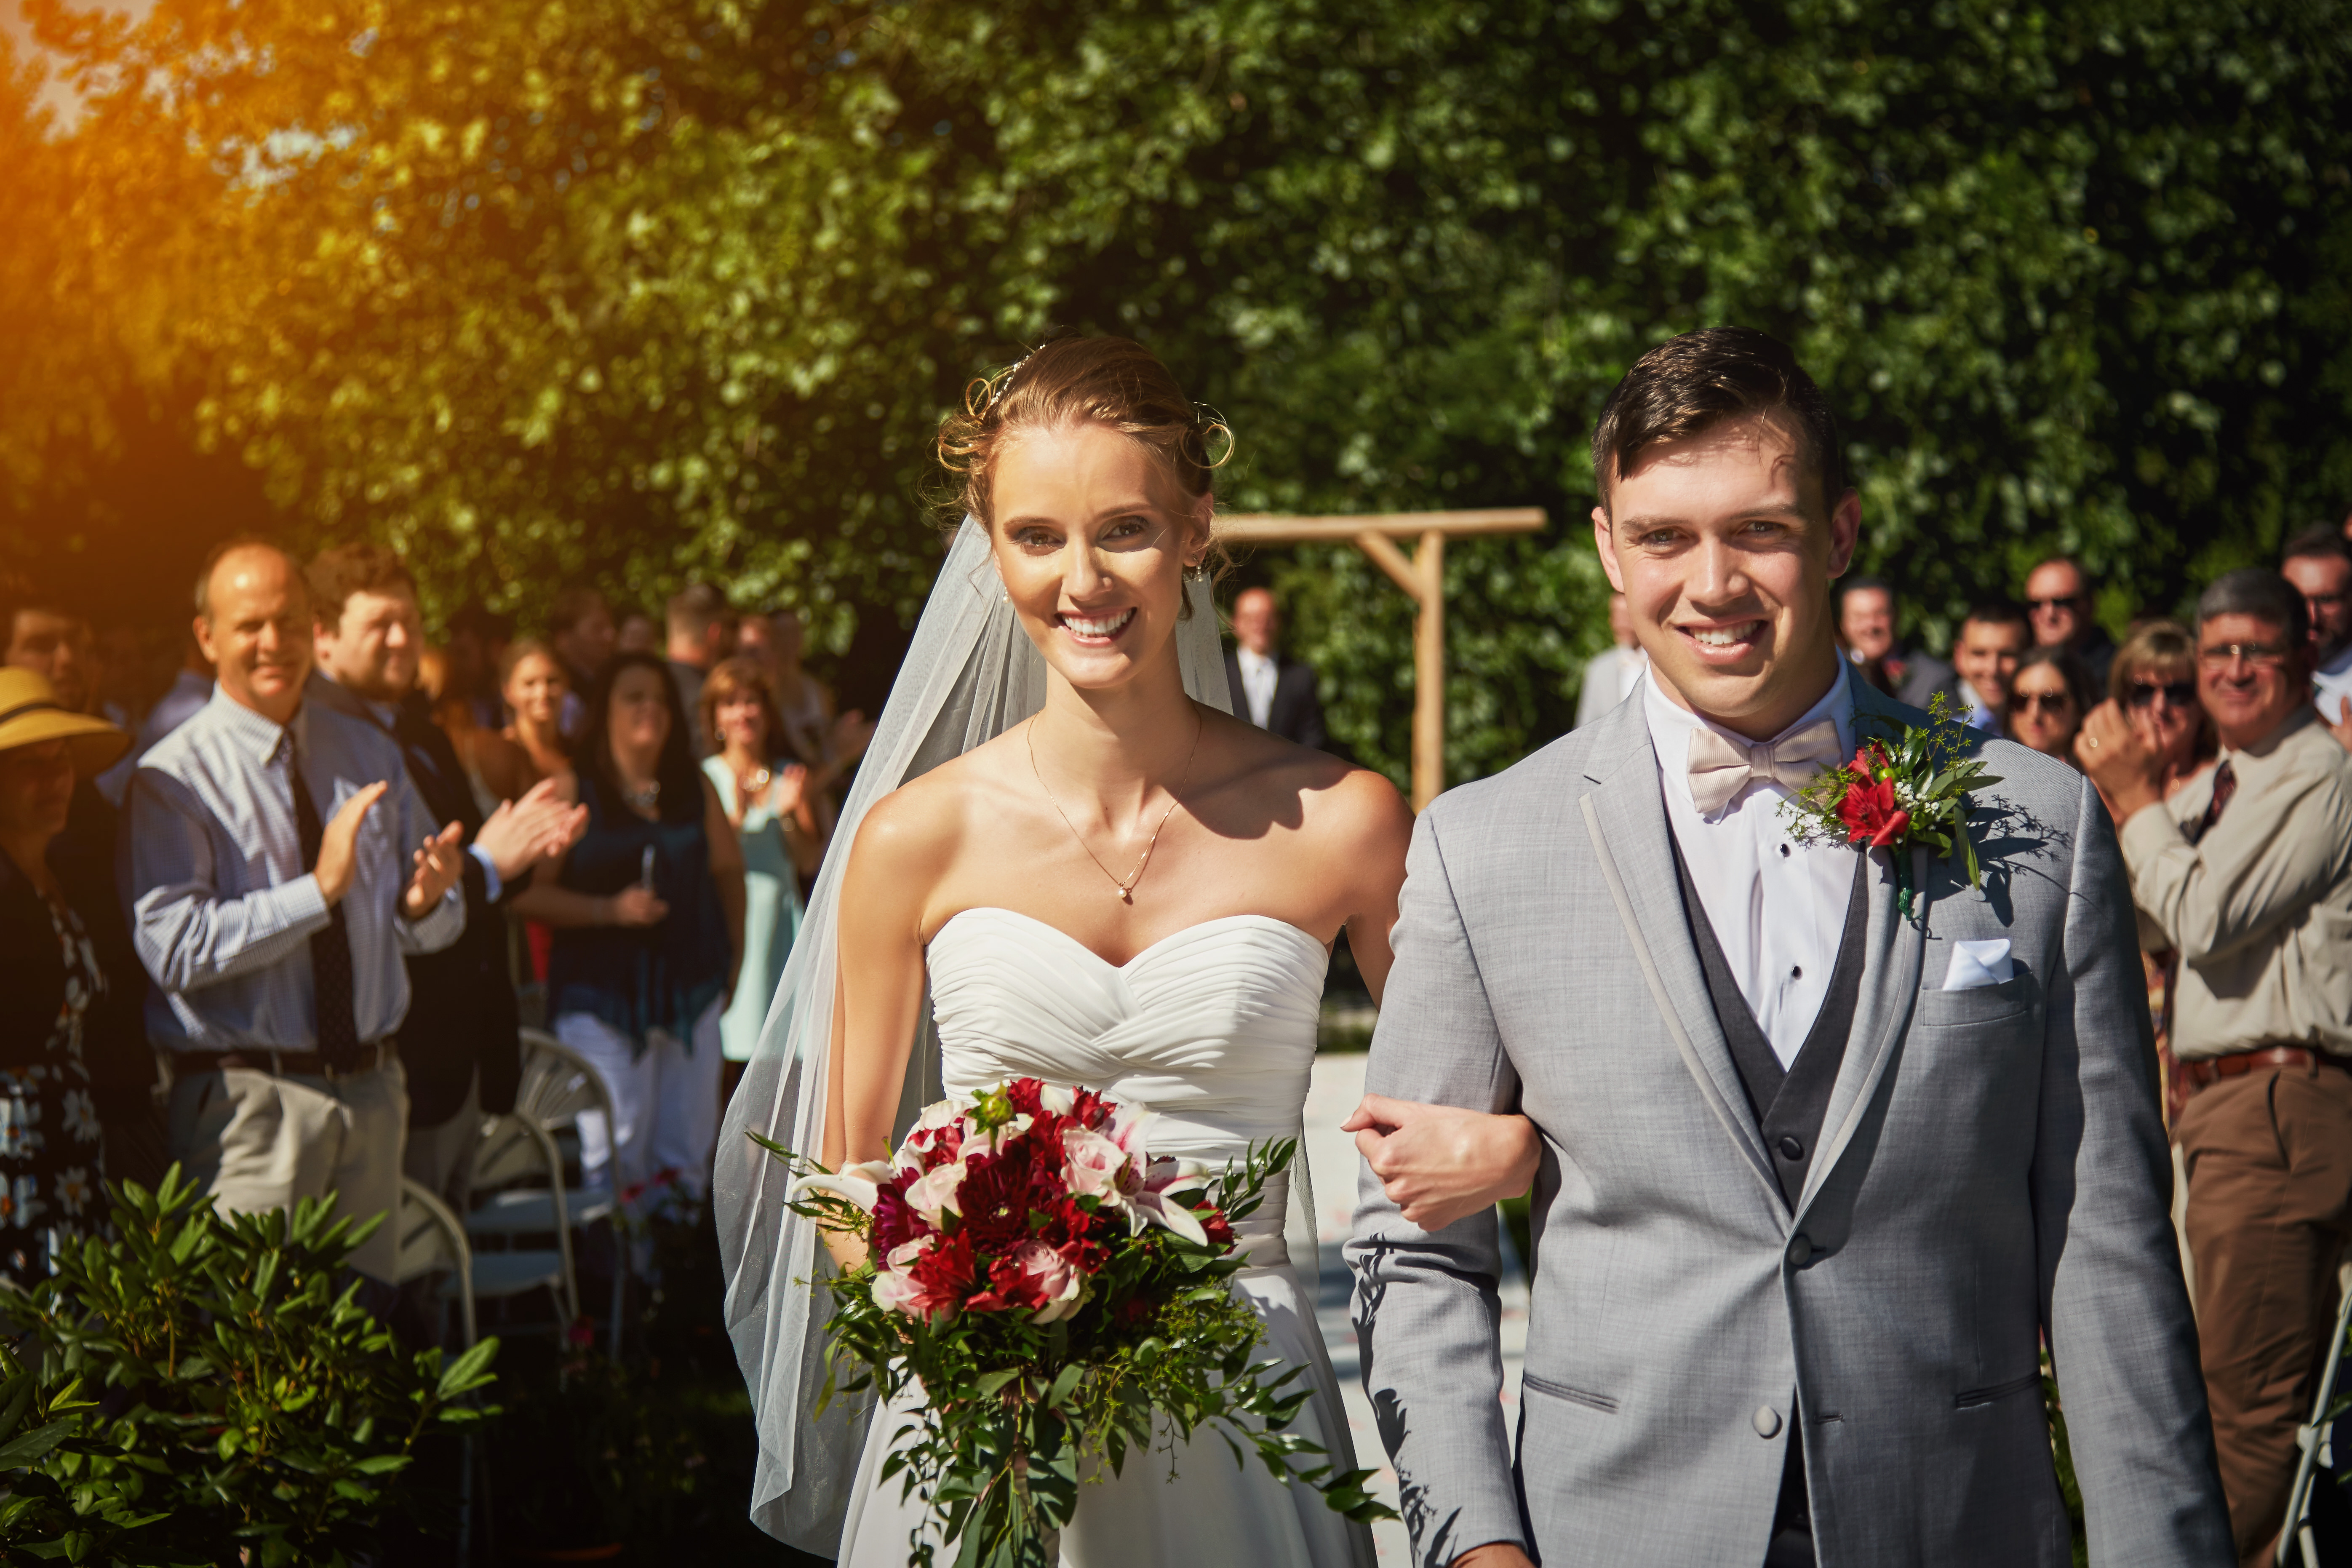 bride and groom photos, bride and groom photography, wedding party, wedding photojournalism style, taking wedding pictures, professional wedding cinematographer prices, marriage photos style, wedding venues central ny, new york new york wedding, first wedding cinematographer, new york event photographer, wedding cinematographer ct, intimate wedding venues new York, professional cinematographer in new York, special event cinematographer, photoshoot nyc, best wedding cinematographer nj, elegant wedding cinematographer, pennsylvania wedding cinematographer, portrait cinematographer cinematographer, virginia wedding photographer, the wedding picture, new york headshot cinematographer, wedding and portrait cinematographer international, best wedding shots, cinematographer in, photos at wedding, professional outdoor wedding cinematographer, bridal shots cinematographer, cool wedding shots, new york wedding blog, famous nyc cinematographer, new york photos, hudson ny wedding venues, best outdoor wedding photos, pre wedding portrait, new trends in wedding cinematographer, top 20 wedding cinematographer, cheap wedding photographer new York, famous new york cinematographer, wedding pictures nyc, new wedding cinematographer ideas, where to take wedding pictures in nyc, wedding cinematographer jobs nyc, cinematographer companies nyc, cheap photographer in new York, wedding pictures new York, new york cinematographer blog, photographing an outdoor wedding, wedding pictures in new York, cinematographer firms new York, wedding blogs nyc, pho nyc, taking wedding photos, wedding cinematographer nyc cheap, best places to take wedding pictures in nyc,